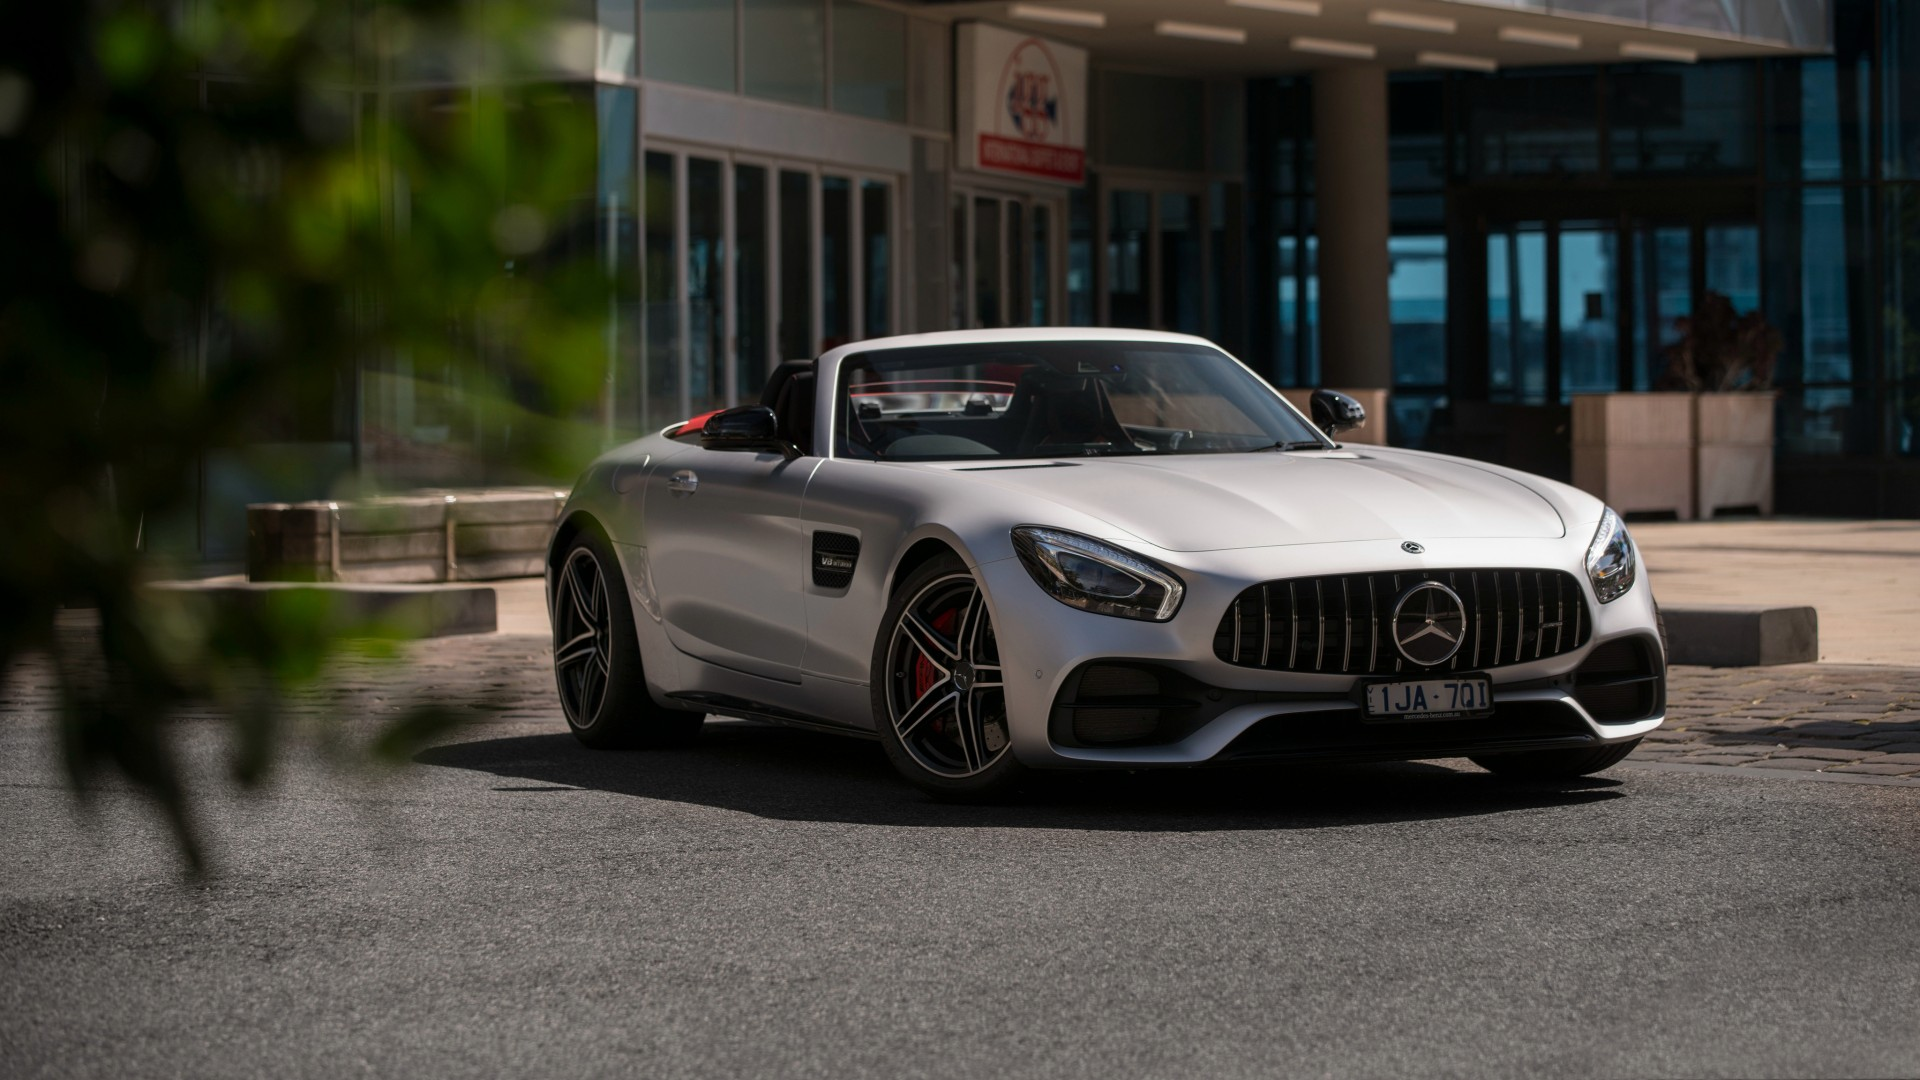 Mercedes AMG GT C Roadster 2018 4K 5 Wallpaper | HD Car ...